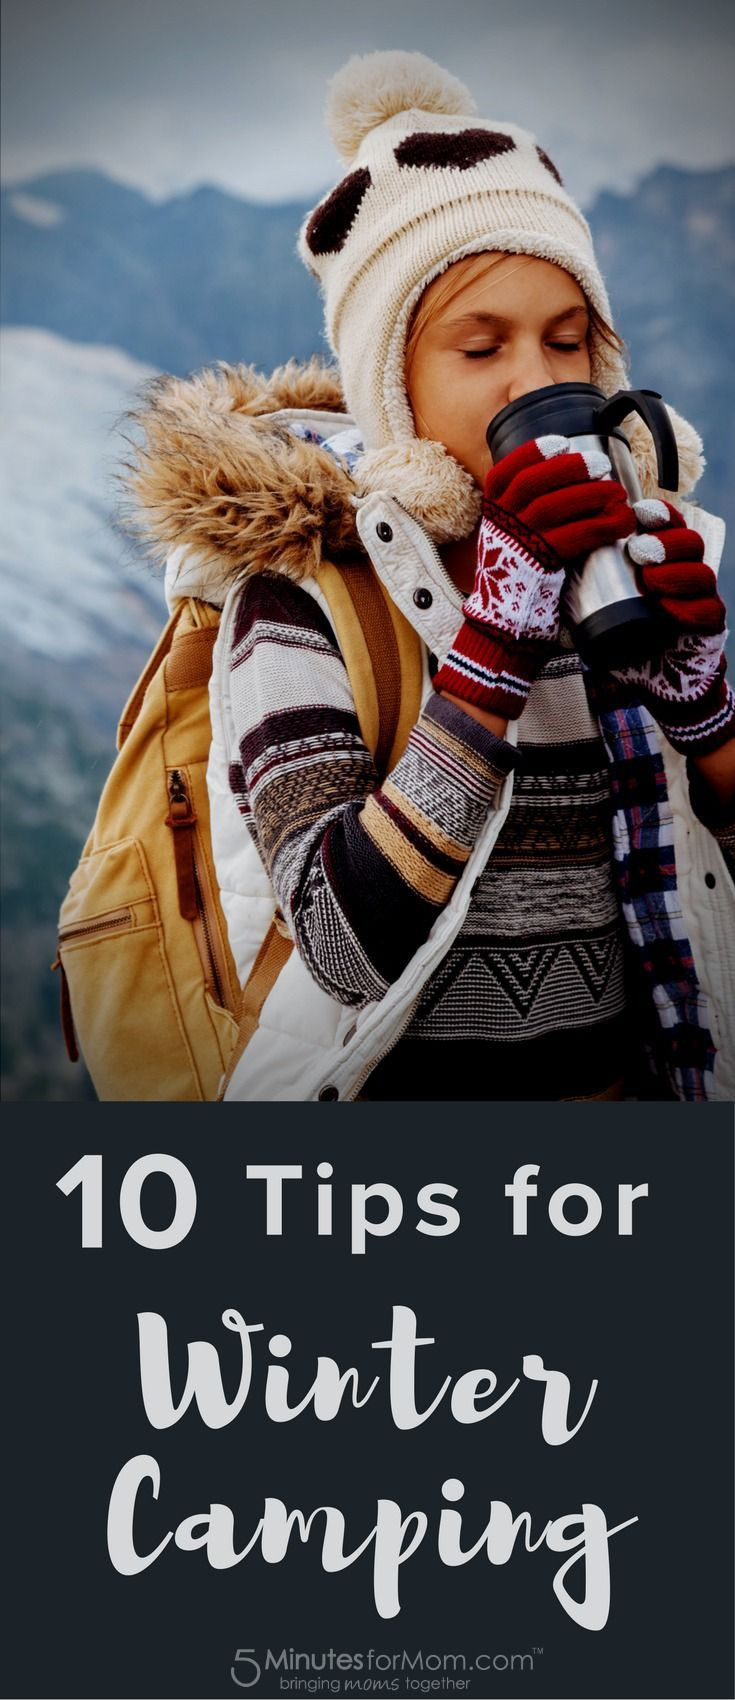 10 Tips For Winter Camping How To Have Fun Camping In Cooler Weather Winter Camping Camping Hacks Tent Camping